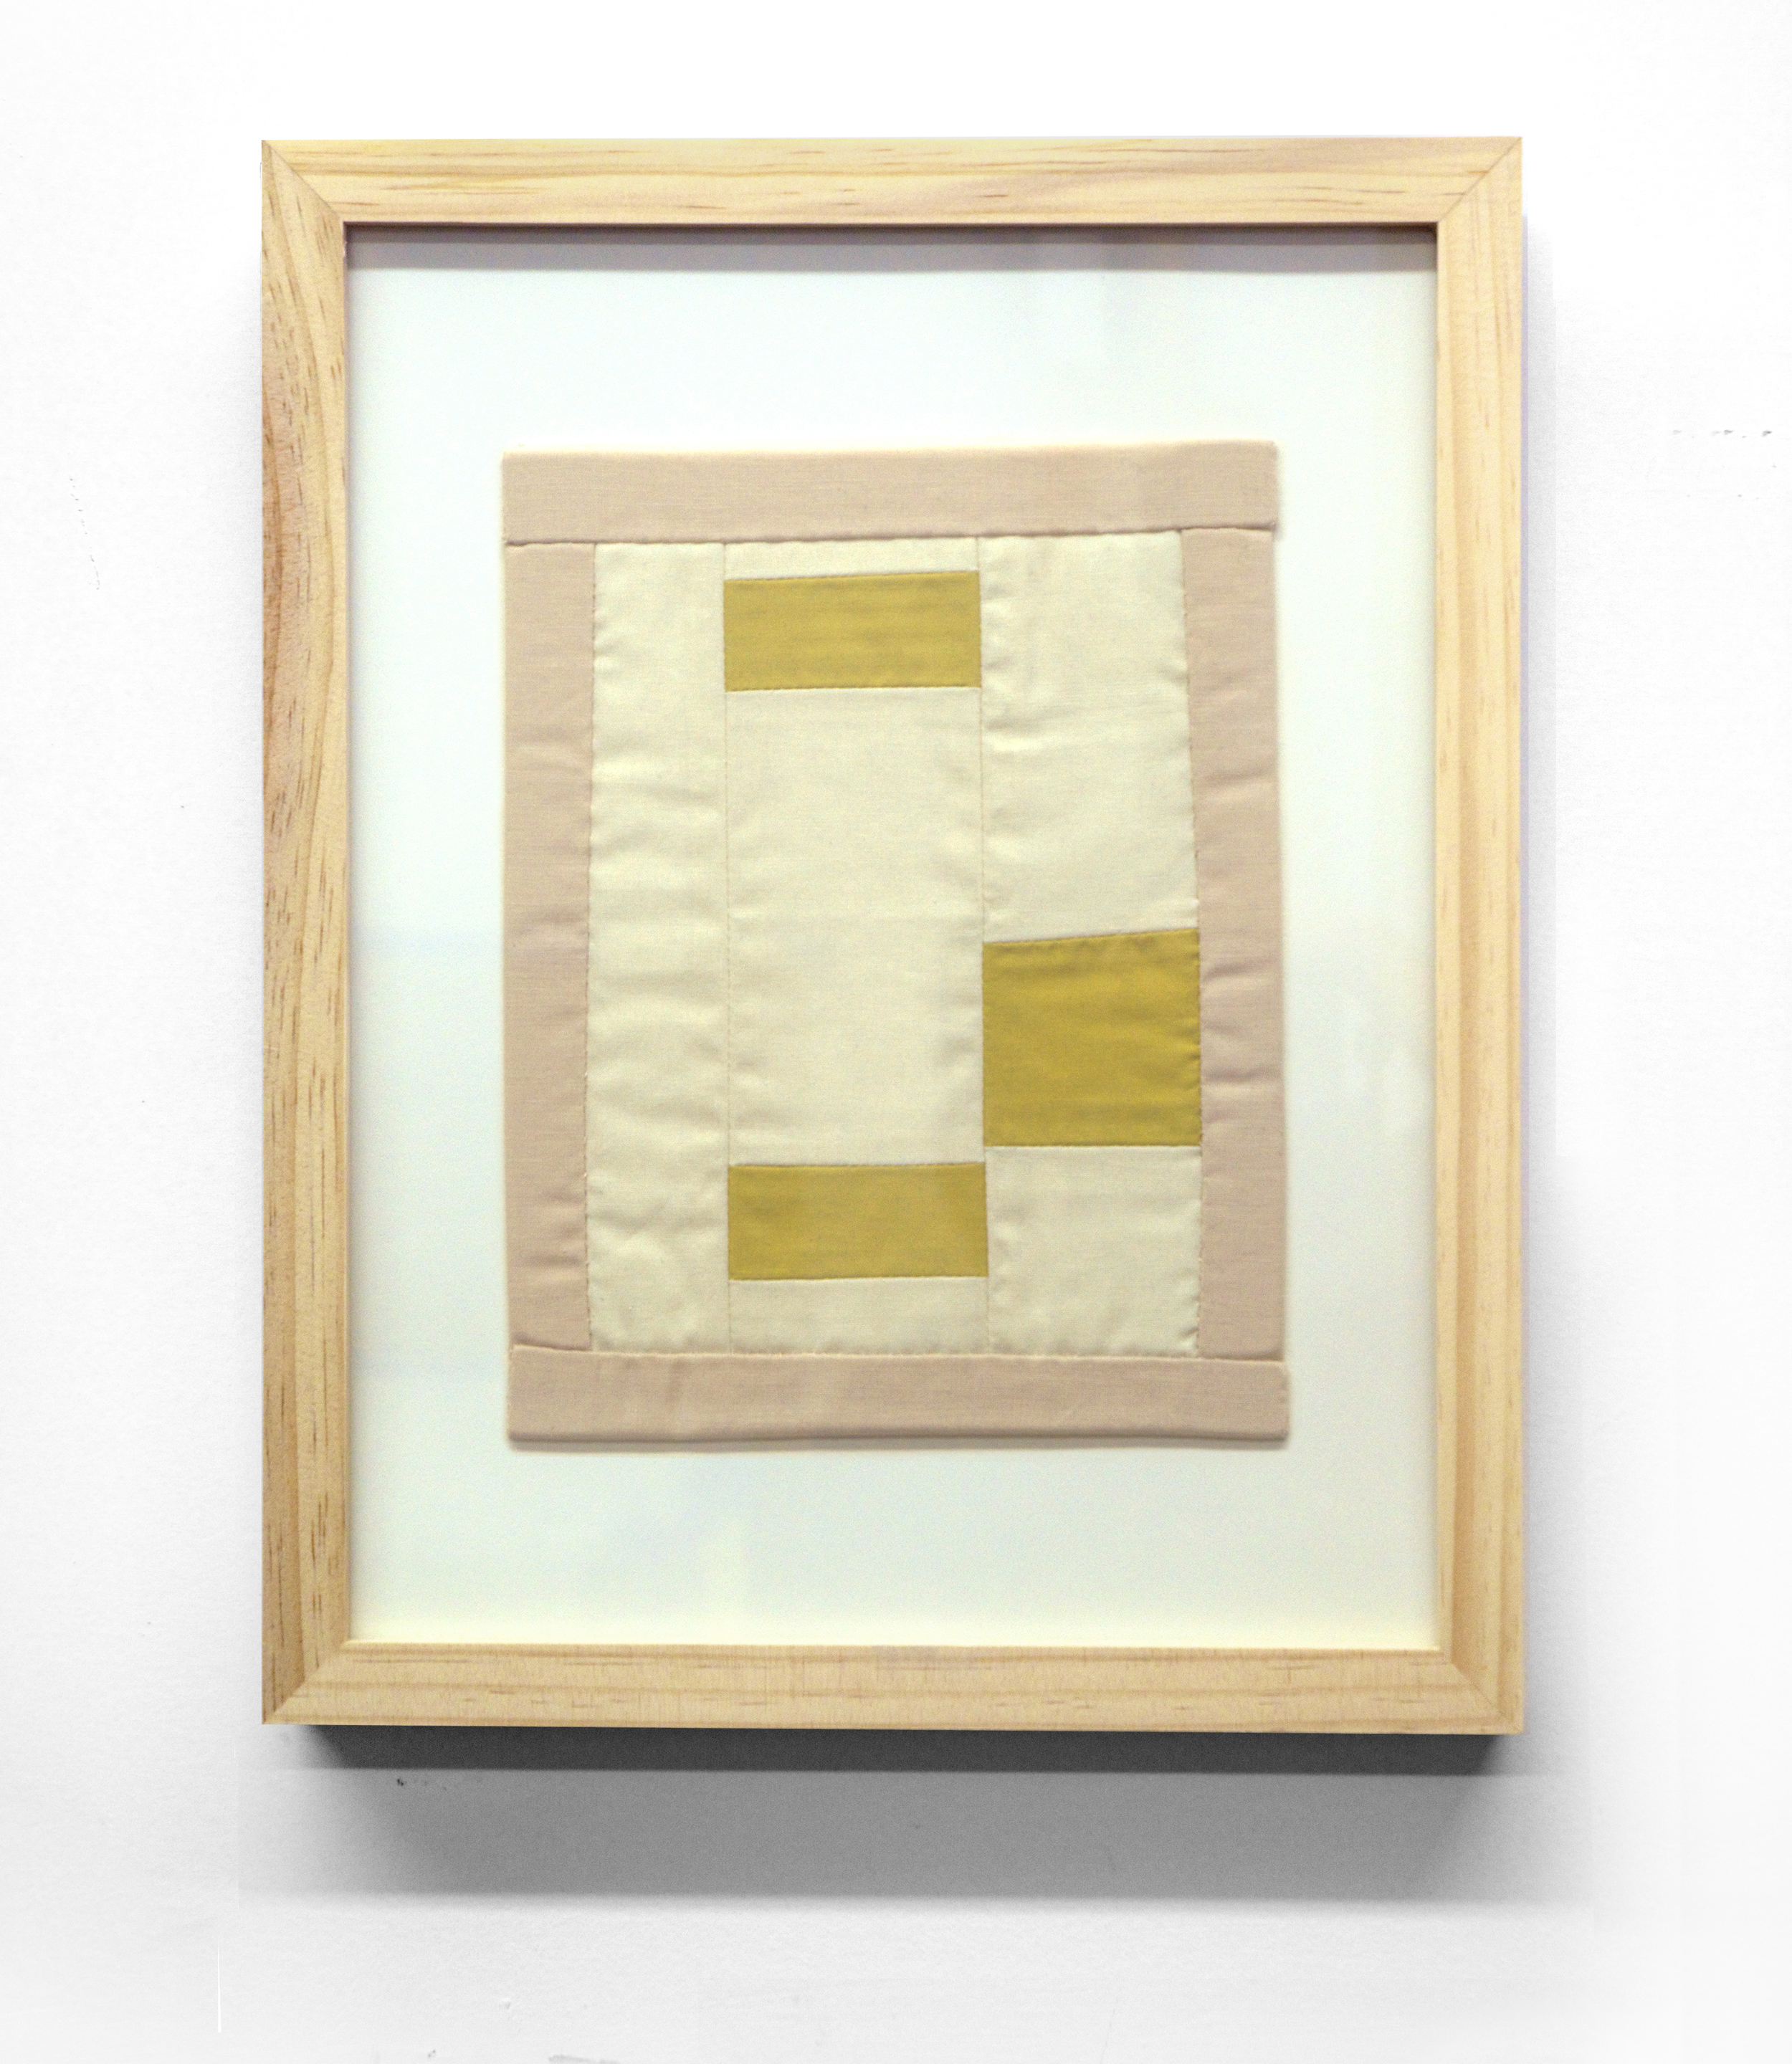 MINI (OCHRE) cotton quilt and frame   11 x 14 inches,  2014